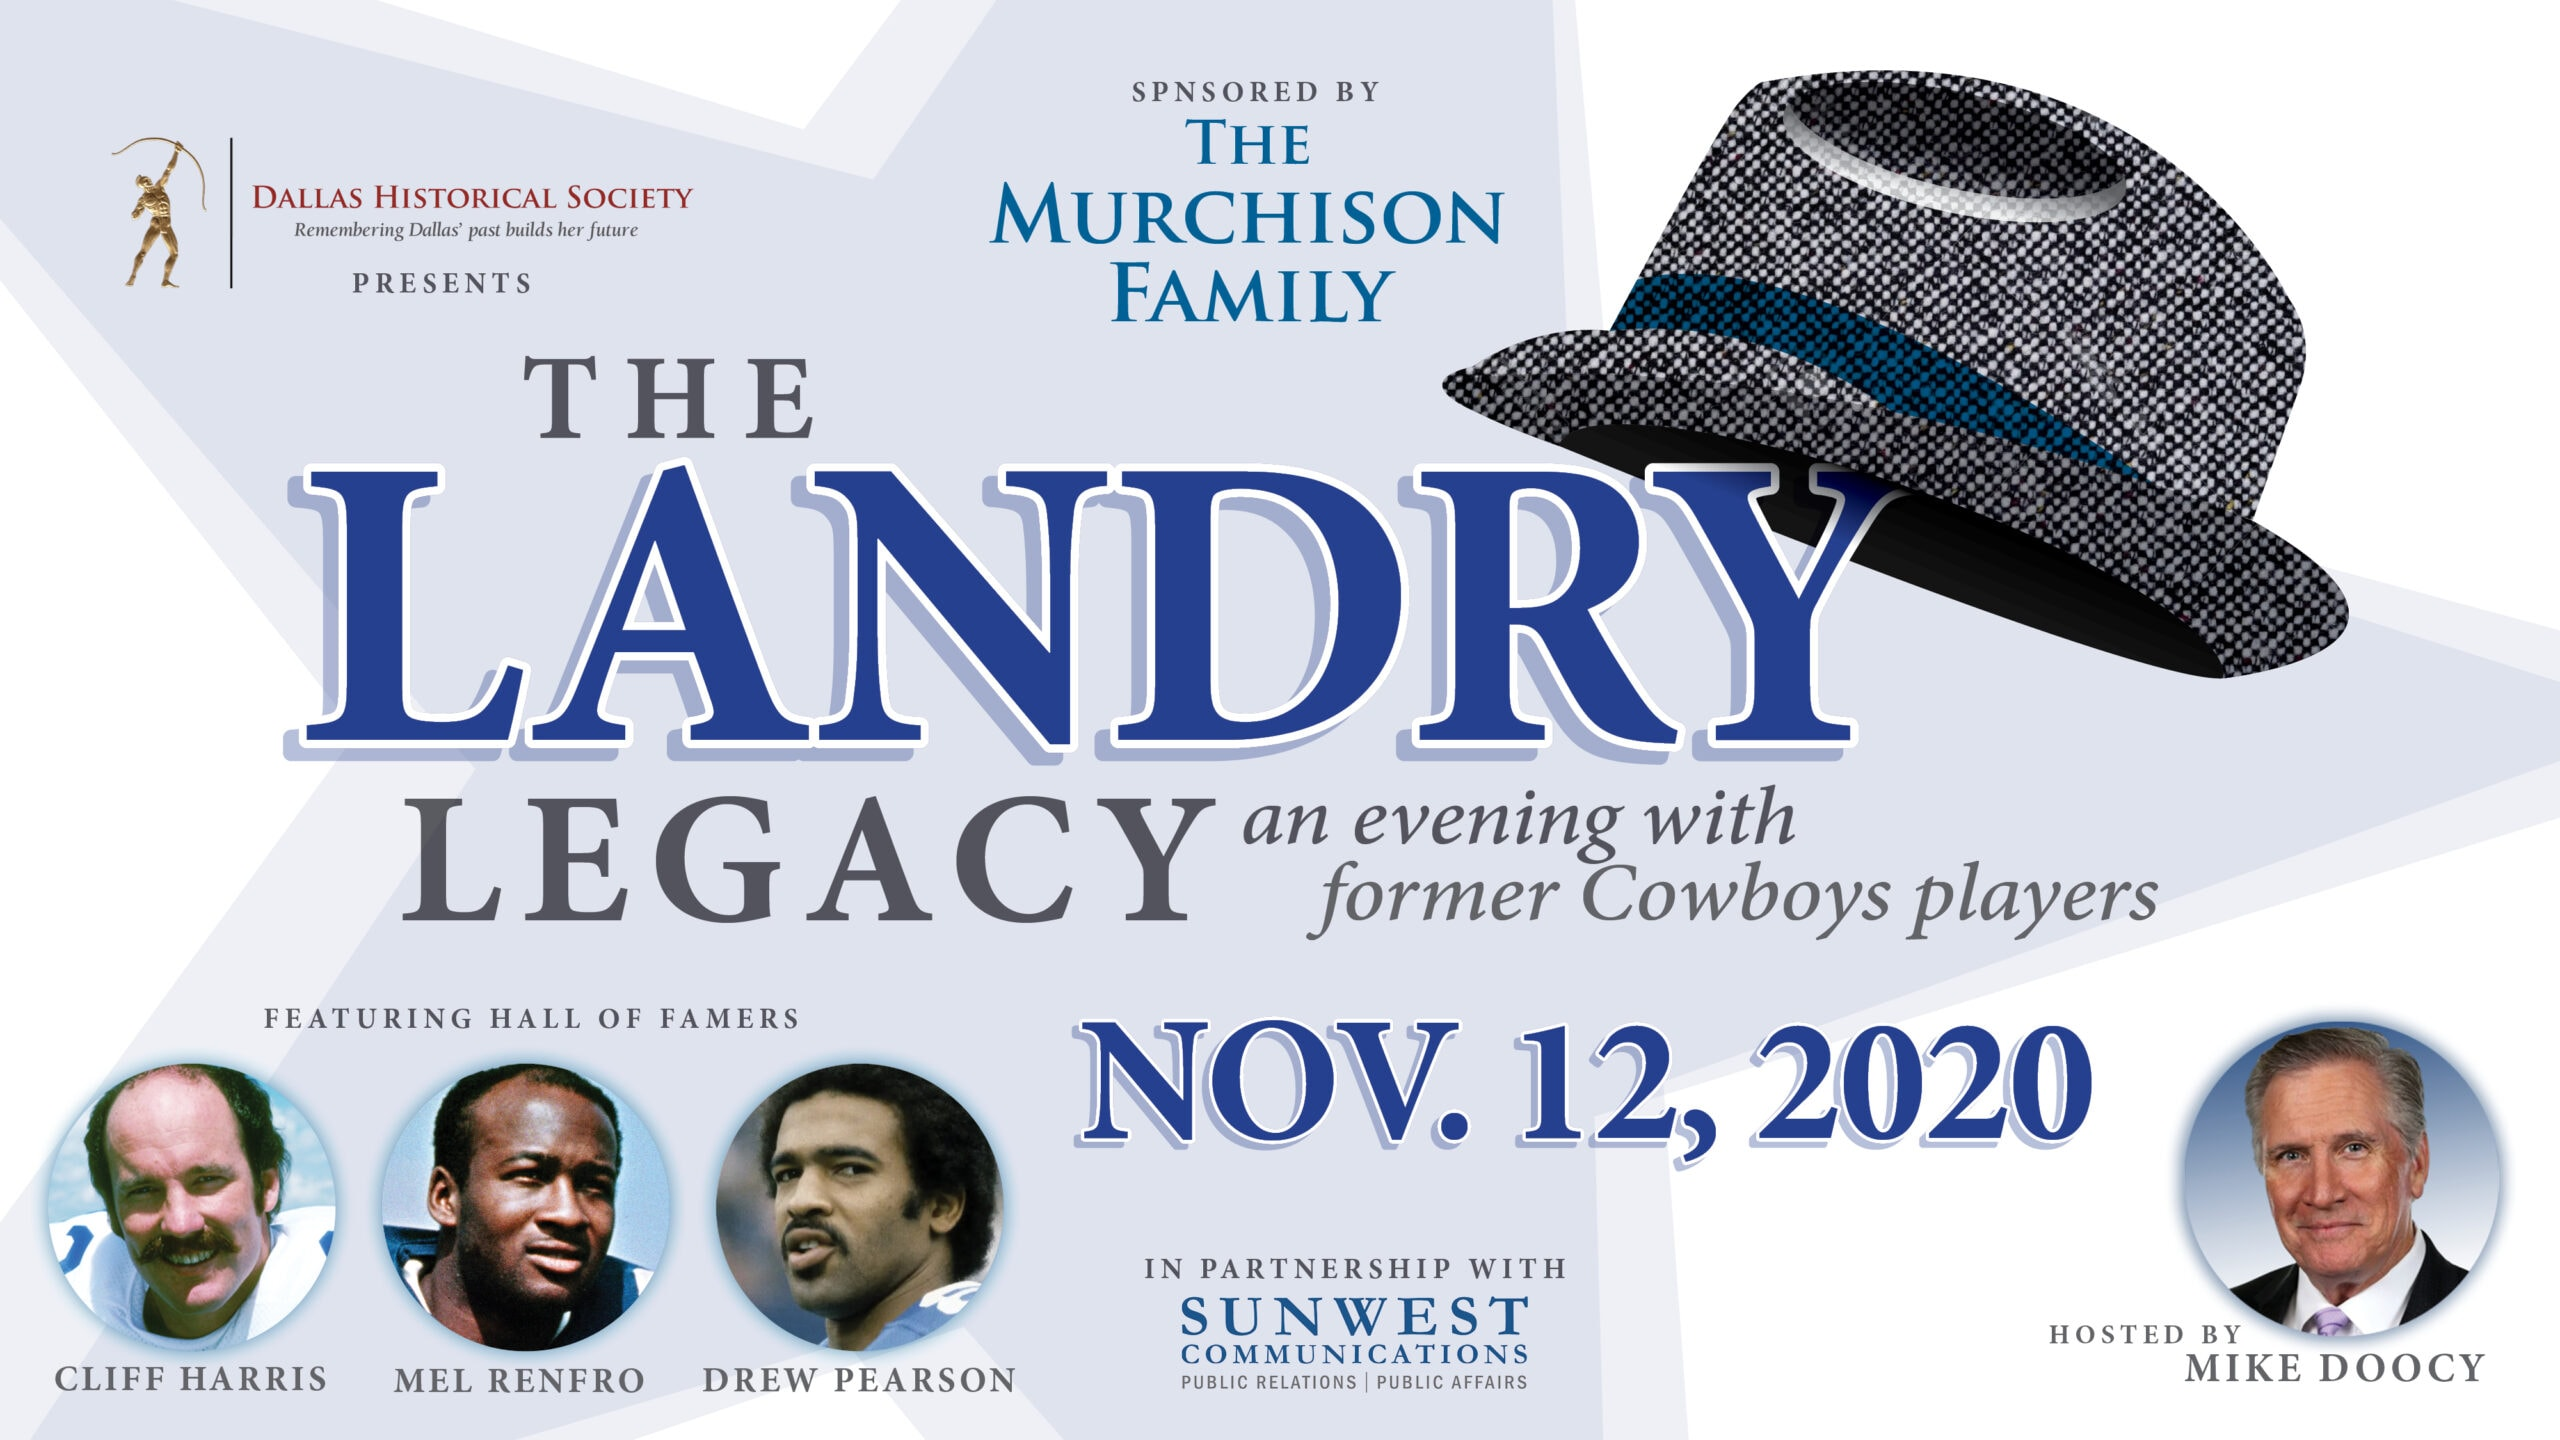 Landry Legacy presented by Dallas Historcial Society